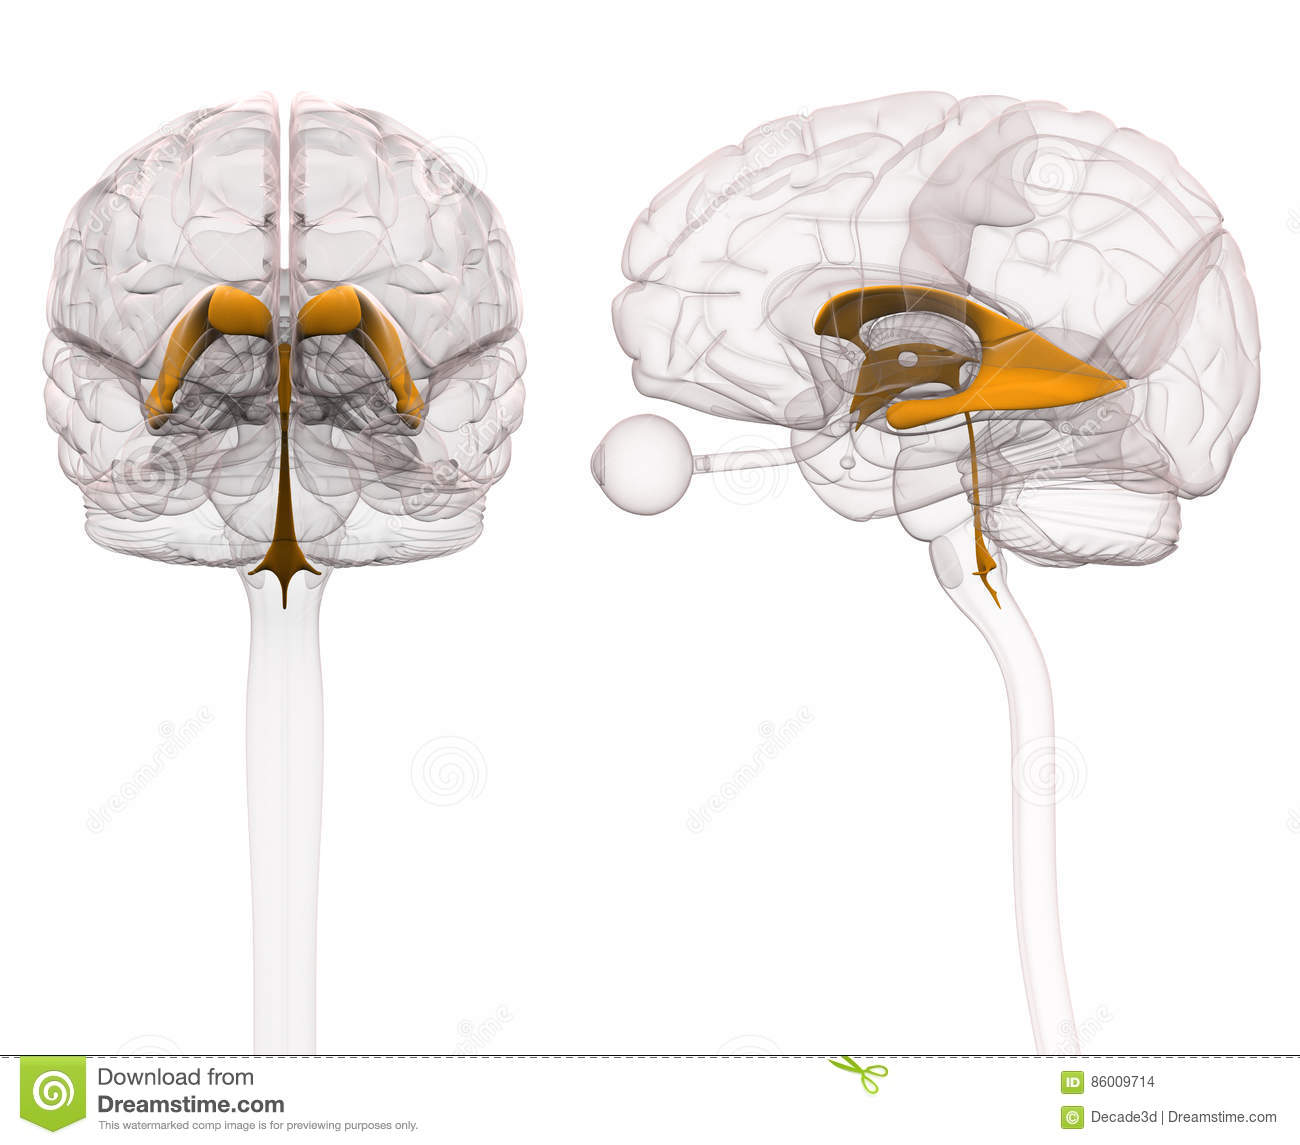 Ventricles Of Brain Anatomy Stock Illustration Illustration Of